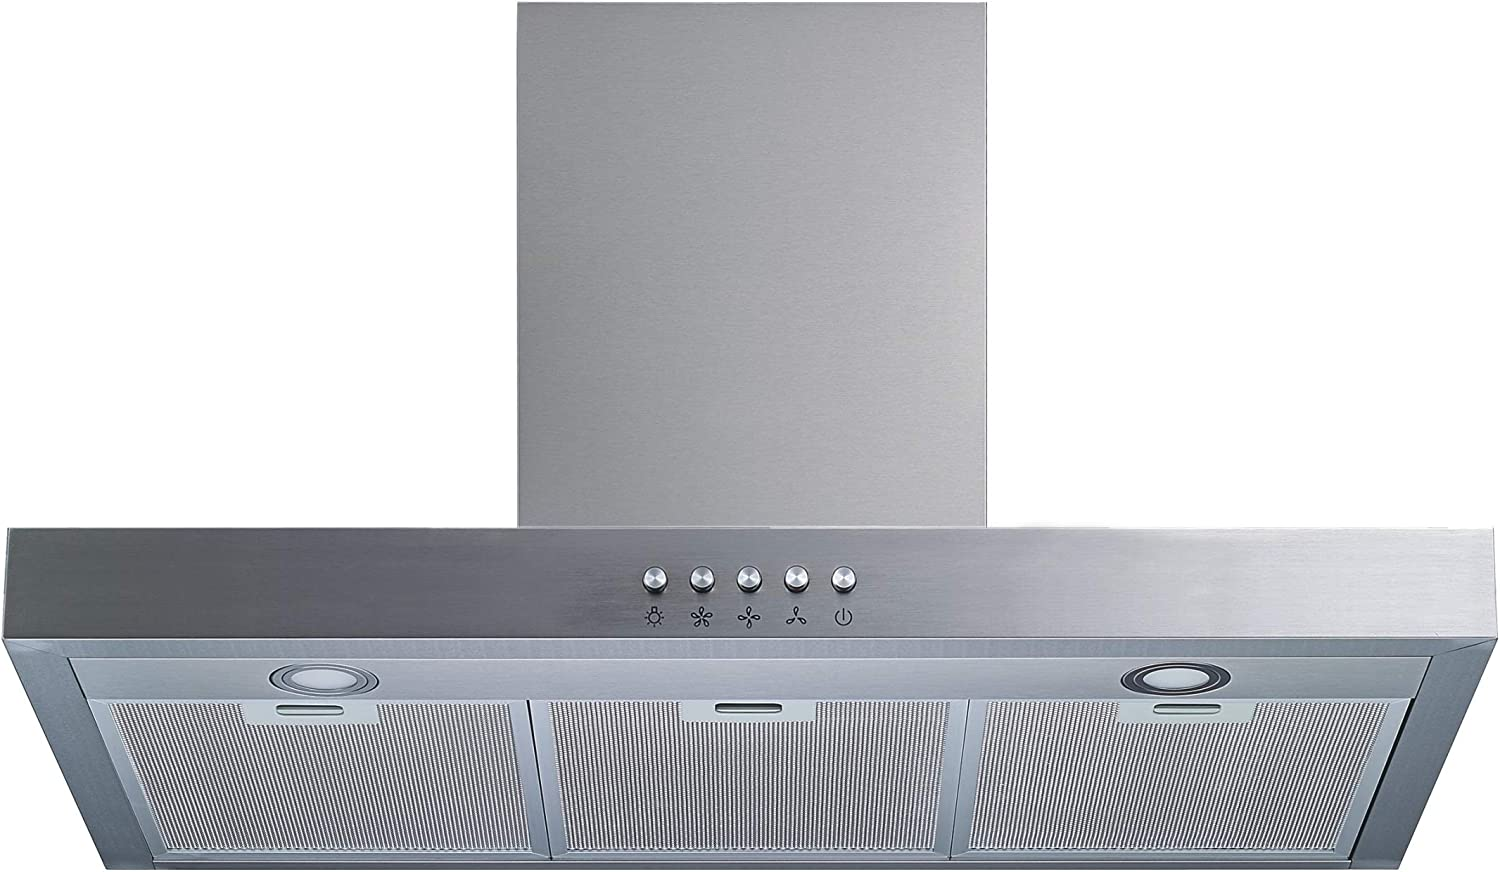 """Winflo 30"""" Wall Mount Stainless Steel Convertible Range Hood with 450 CFM Air Flow, Aluminium Mesh Filters and LED Lights"""